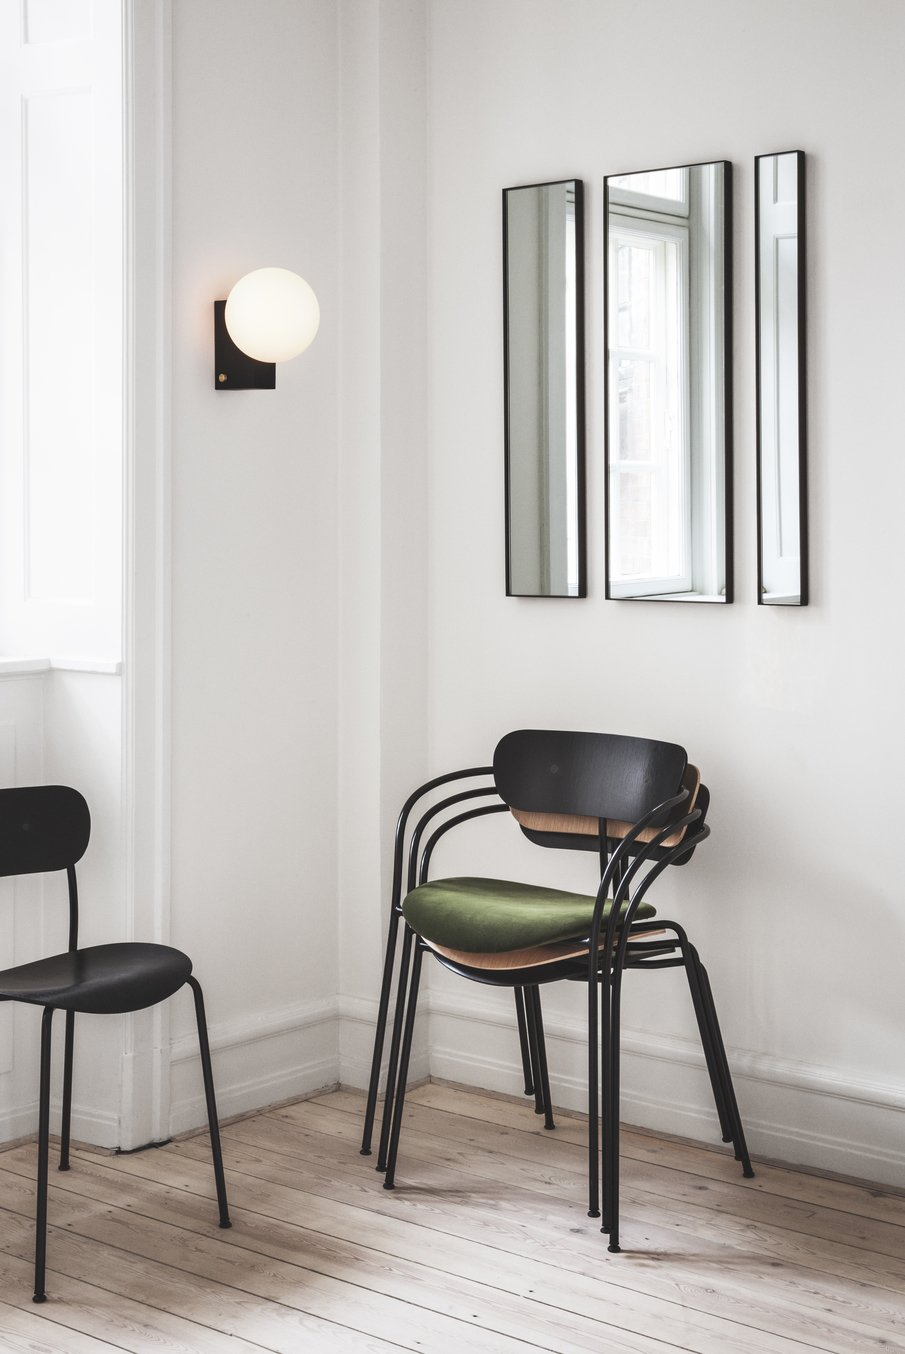 Living Room, Chair, Light Hardwood Floor, and Wall Lighting  Photo 3 of 16 in Trend Watch: Study Up on the Best Design from imm Cologne 2018